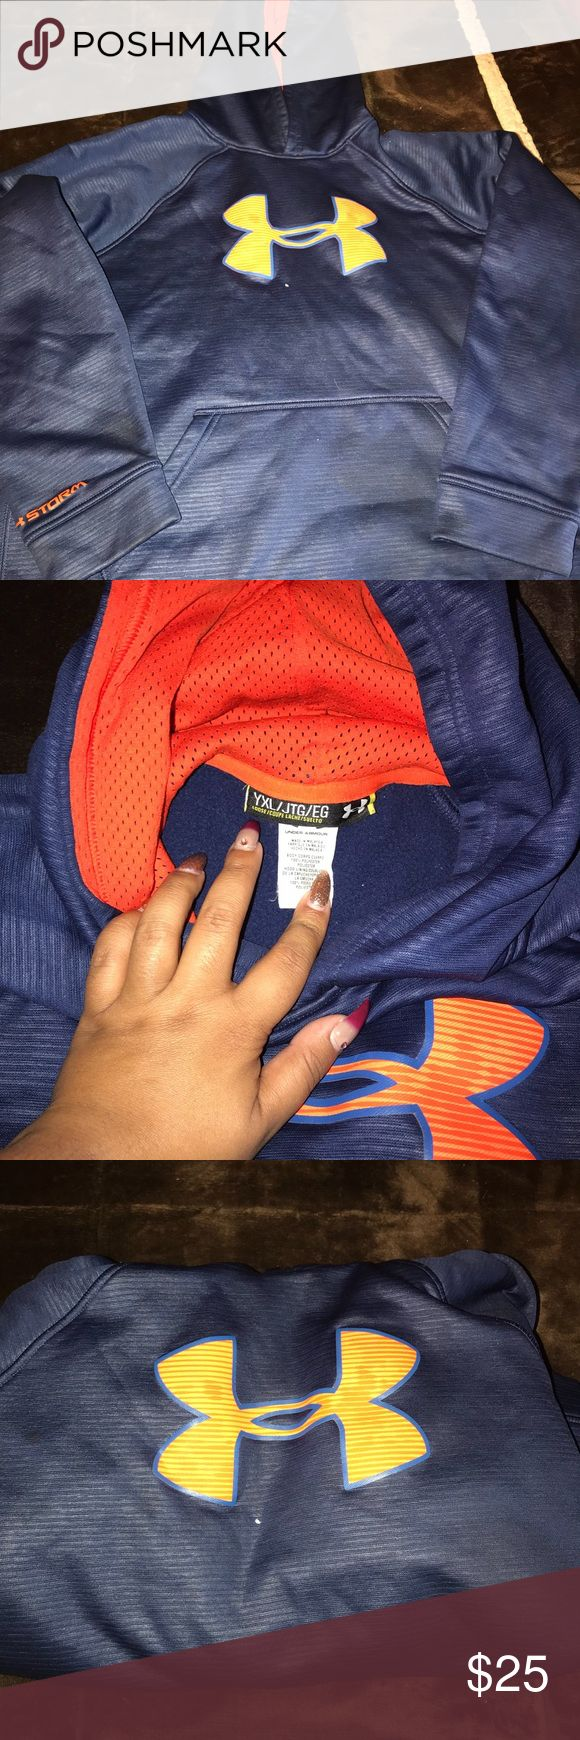 Under Armour Hoodie Navy blue and orange youth Hoodie! Worn a few times, has one very small mark on the Hoodie right under the logo, still good condition. Youth extra large Under Armour Tops Sweatshirts & Hoodies